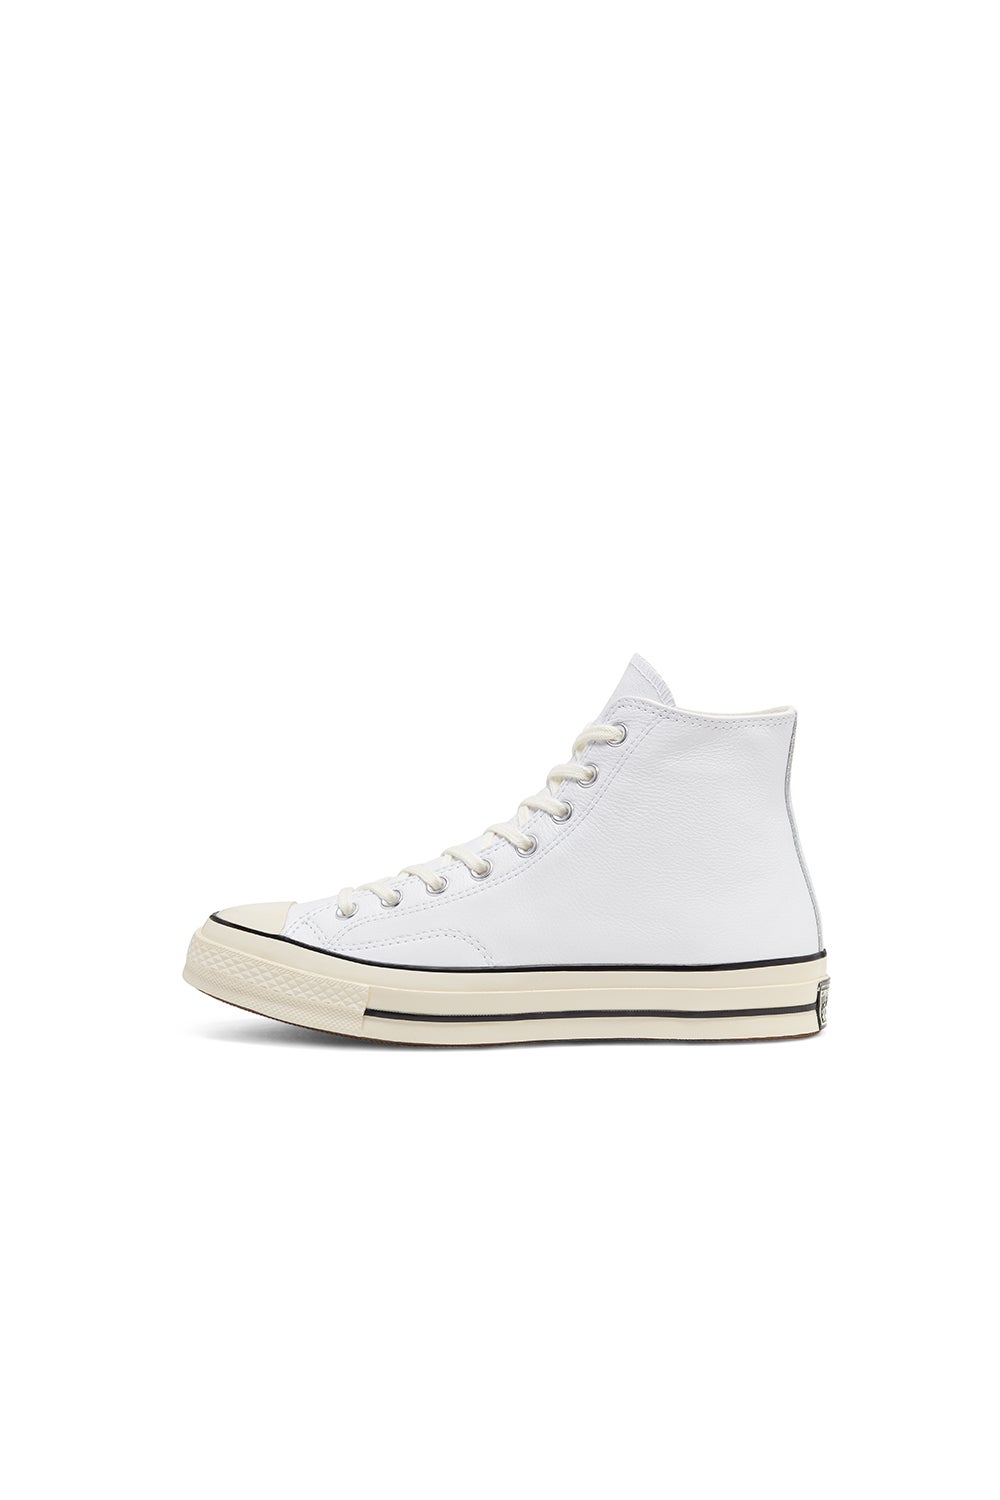 Converse Chuck Taylor All Star 70 Leather Hi Top White